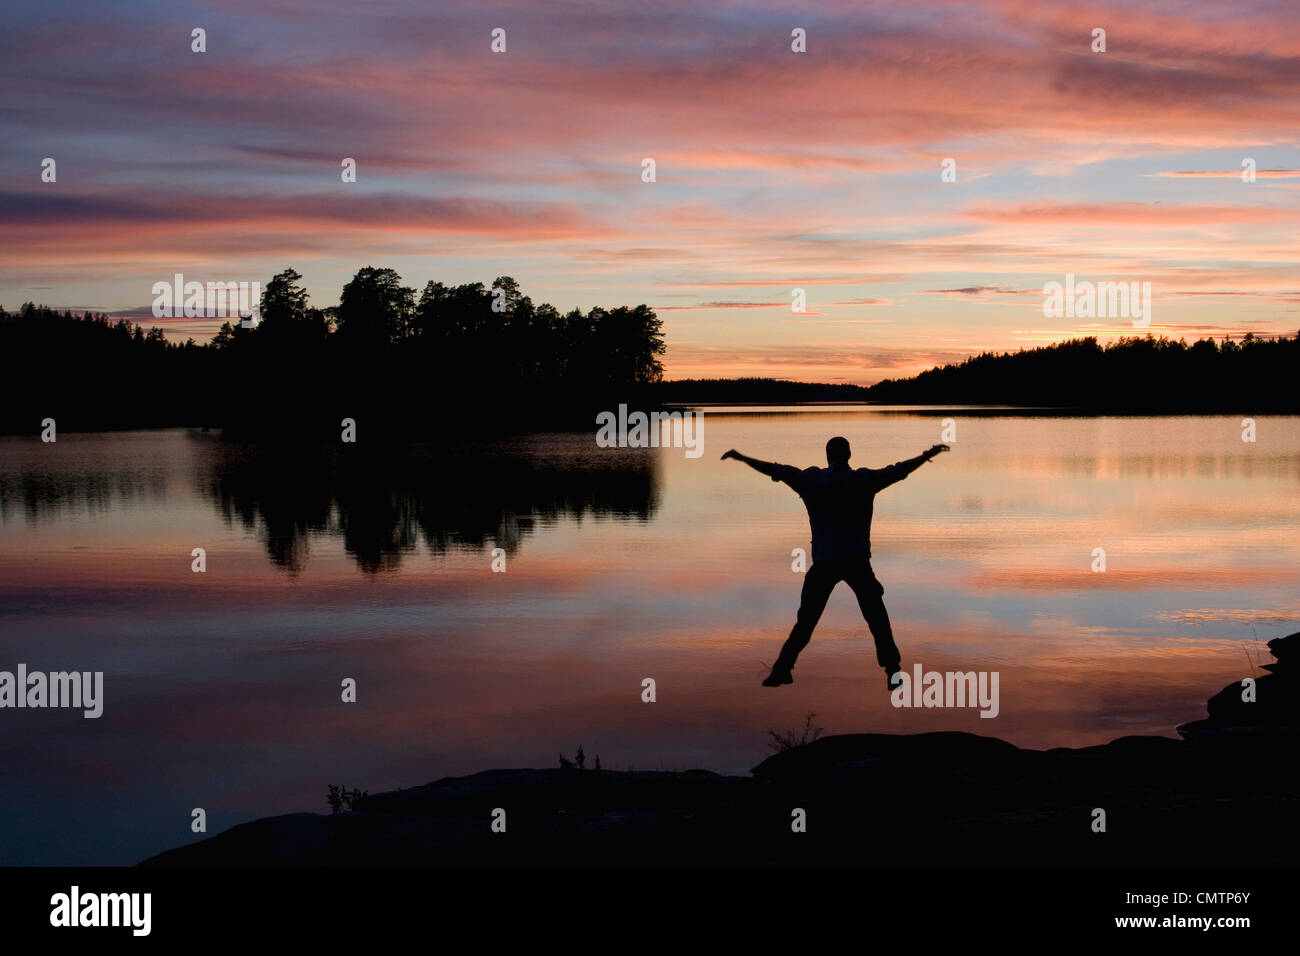 Man jumping in water at sunset - Stock Image